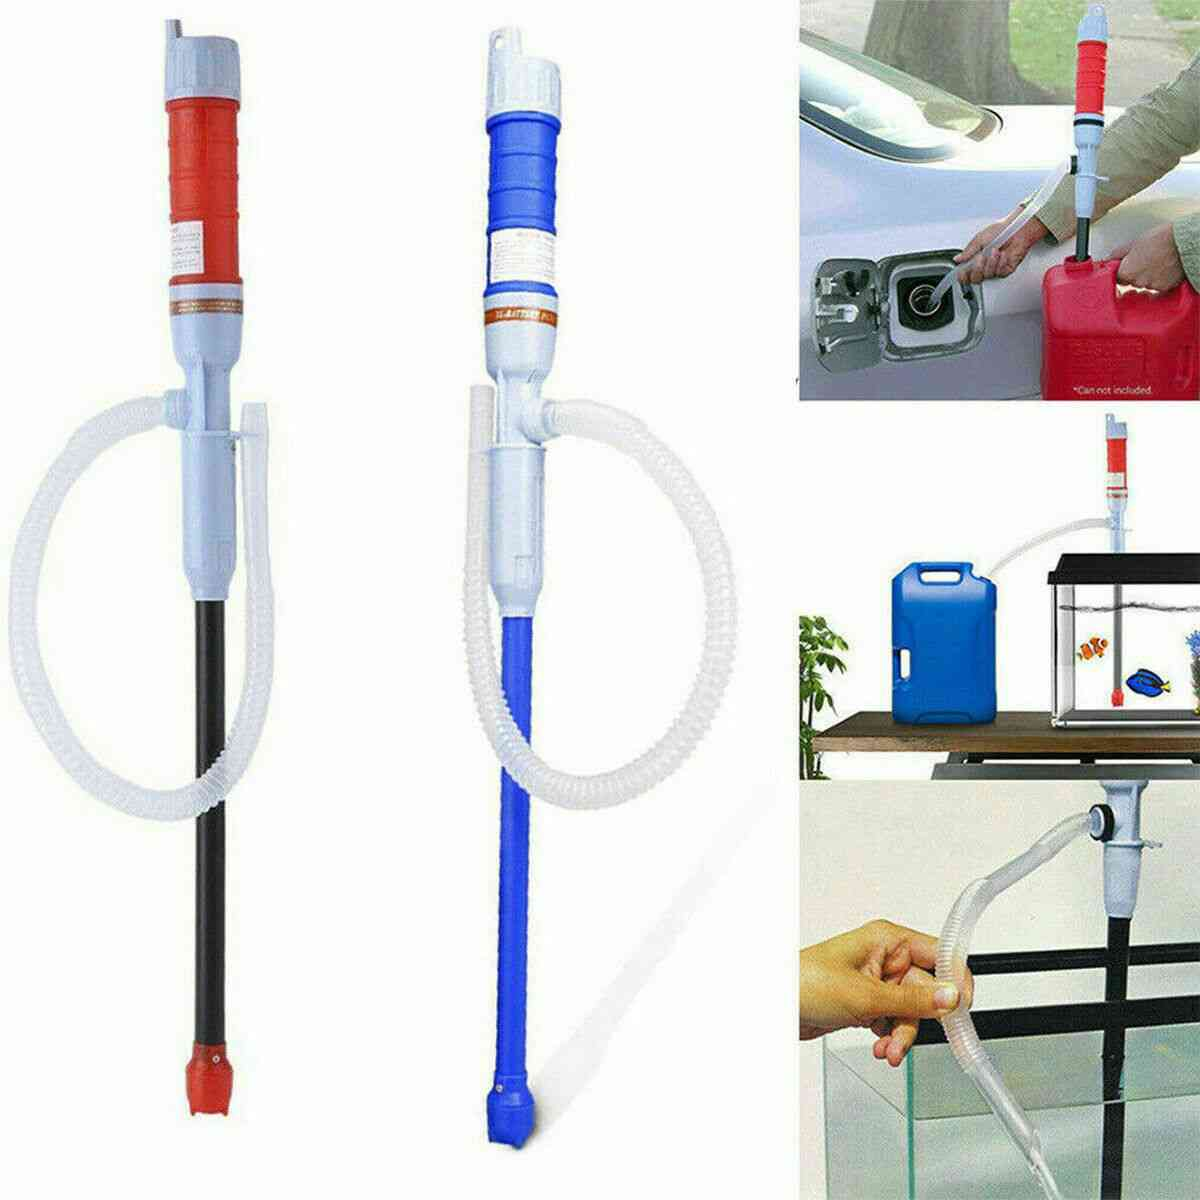 Handheld Liquid Fuel Syphon Pump - Automatic Transfer Gas, Oil, Water